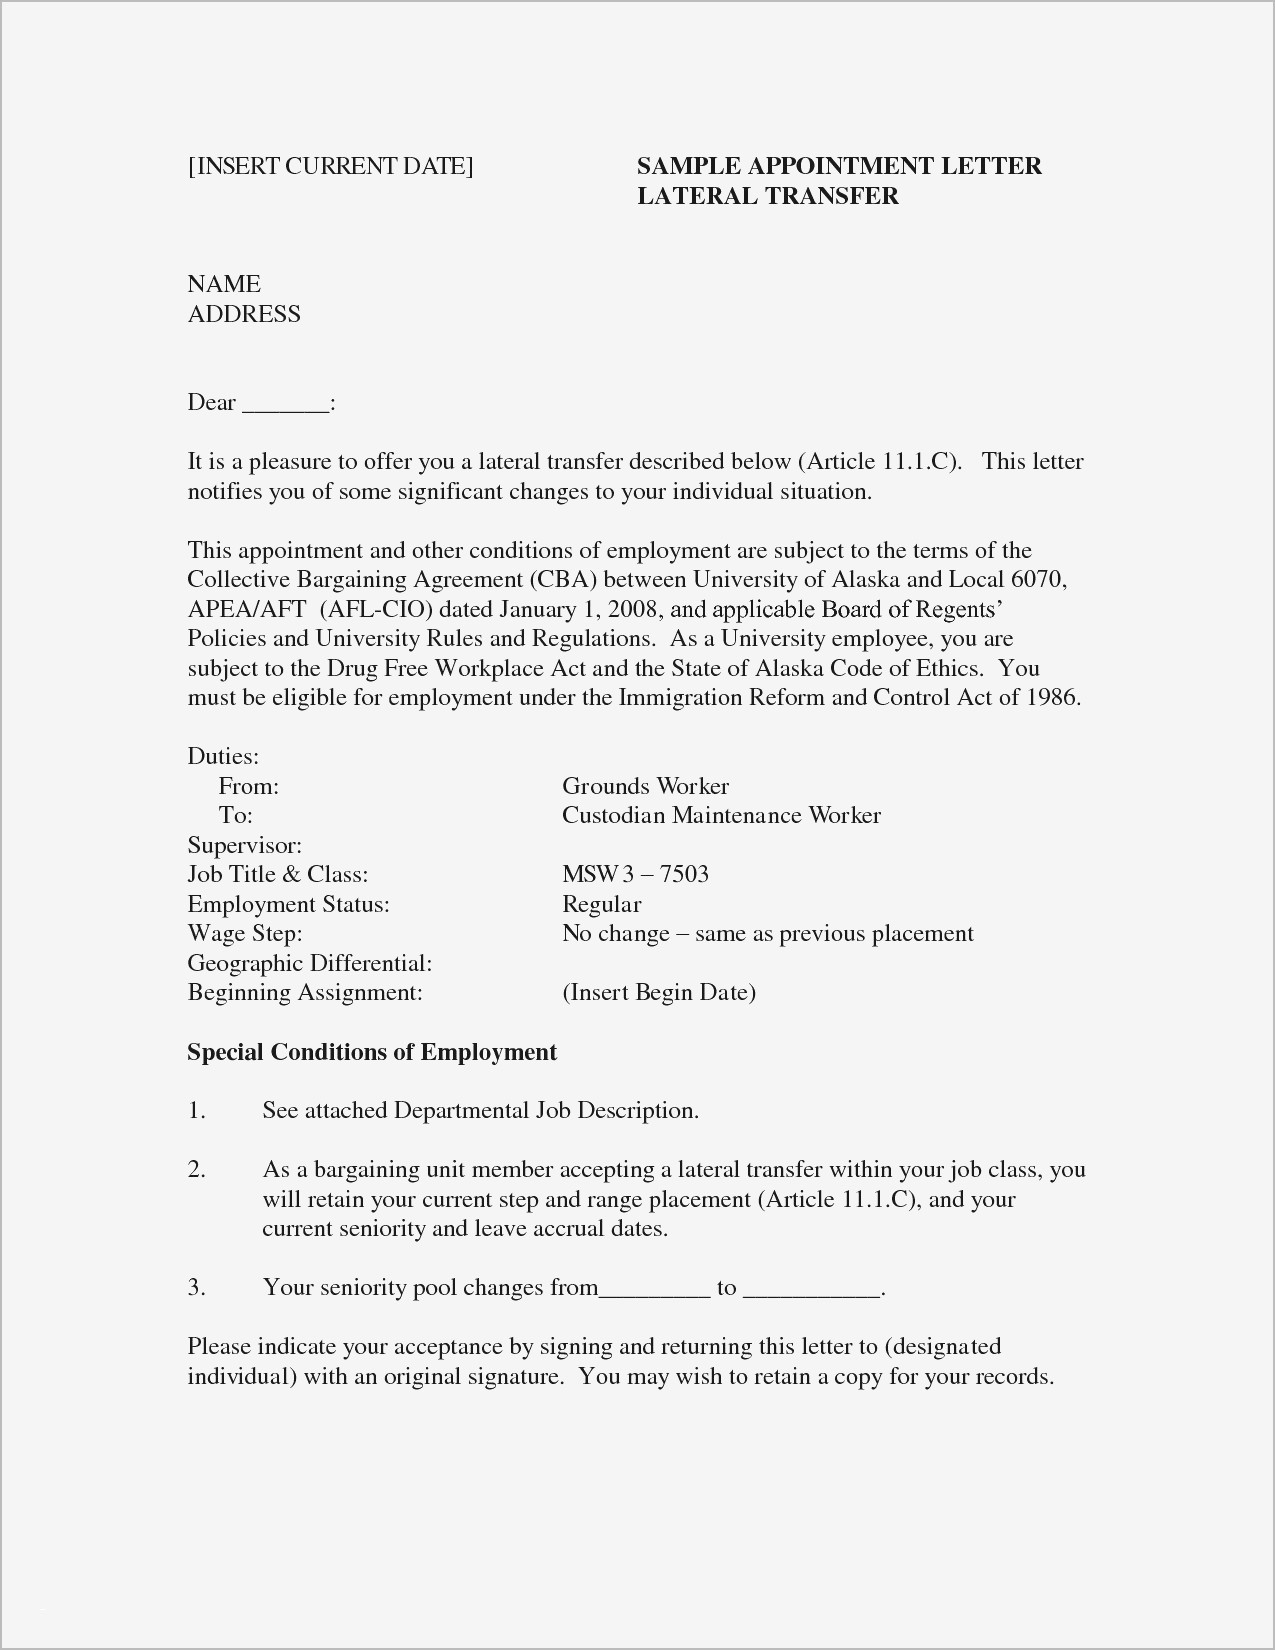 Executive Summary for Resume - Resume Professional Summary Examples Fresh Lovely Good Summary for